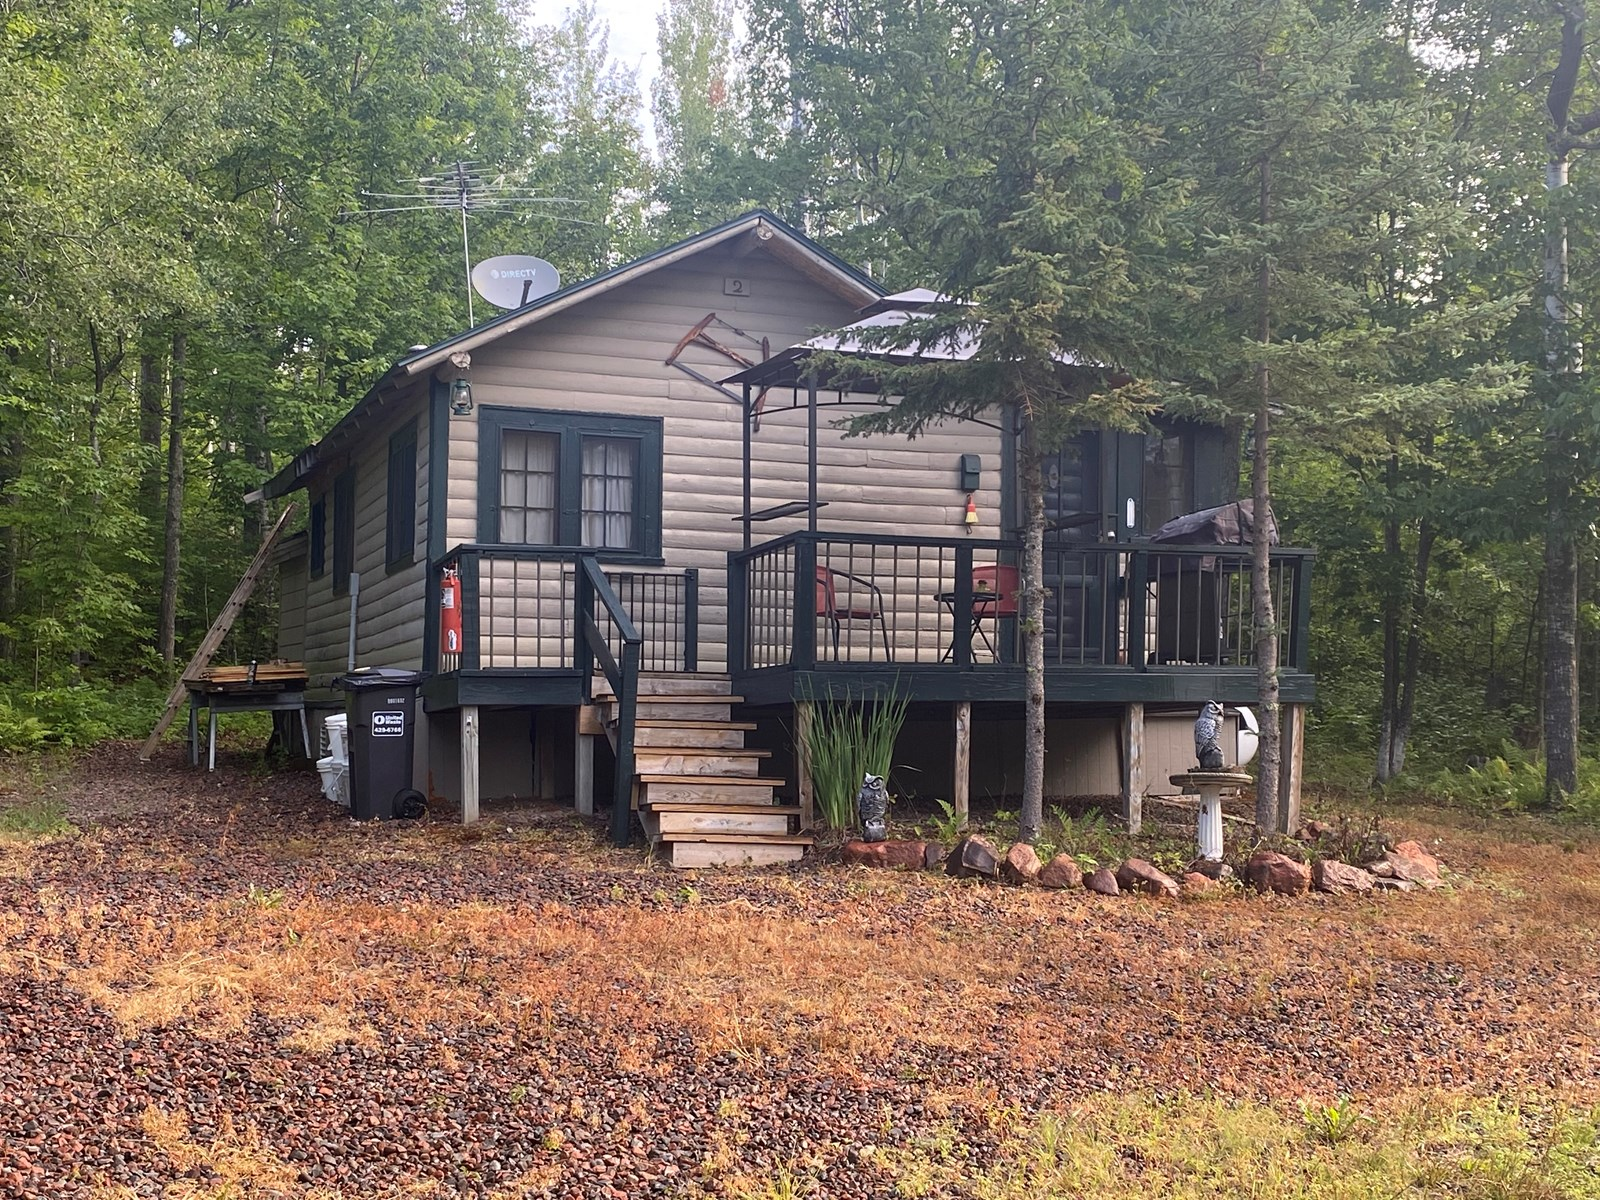 Seasonal Cabin On Recreational Land For Sale In Northern MN